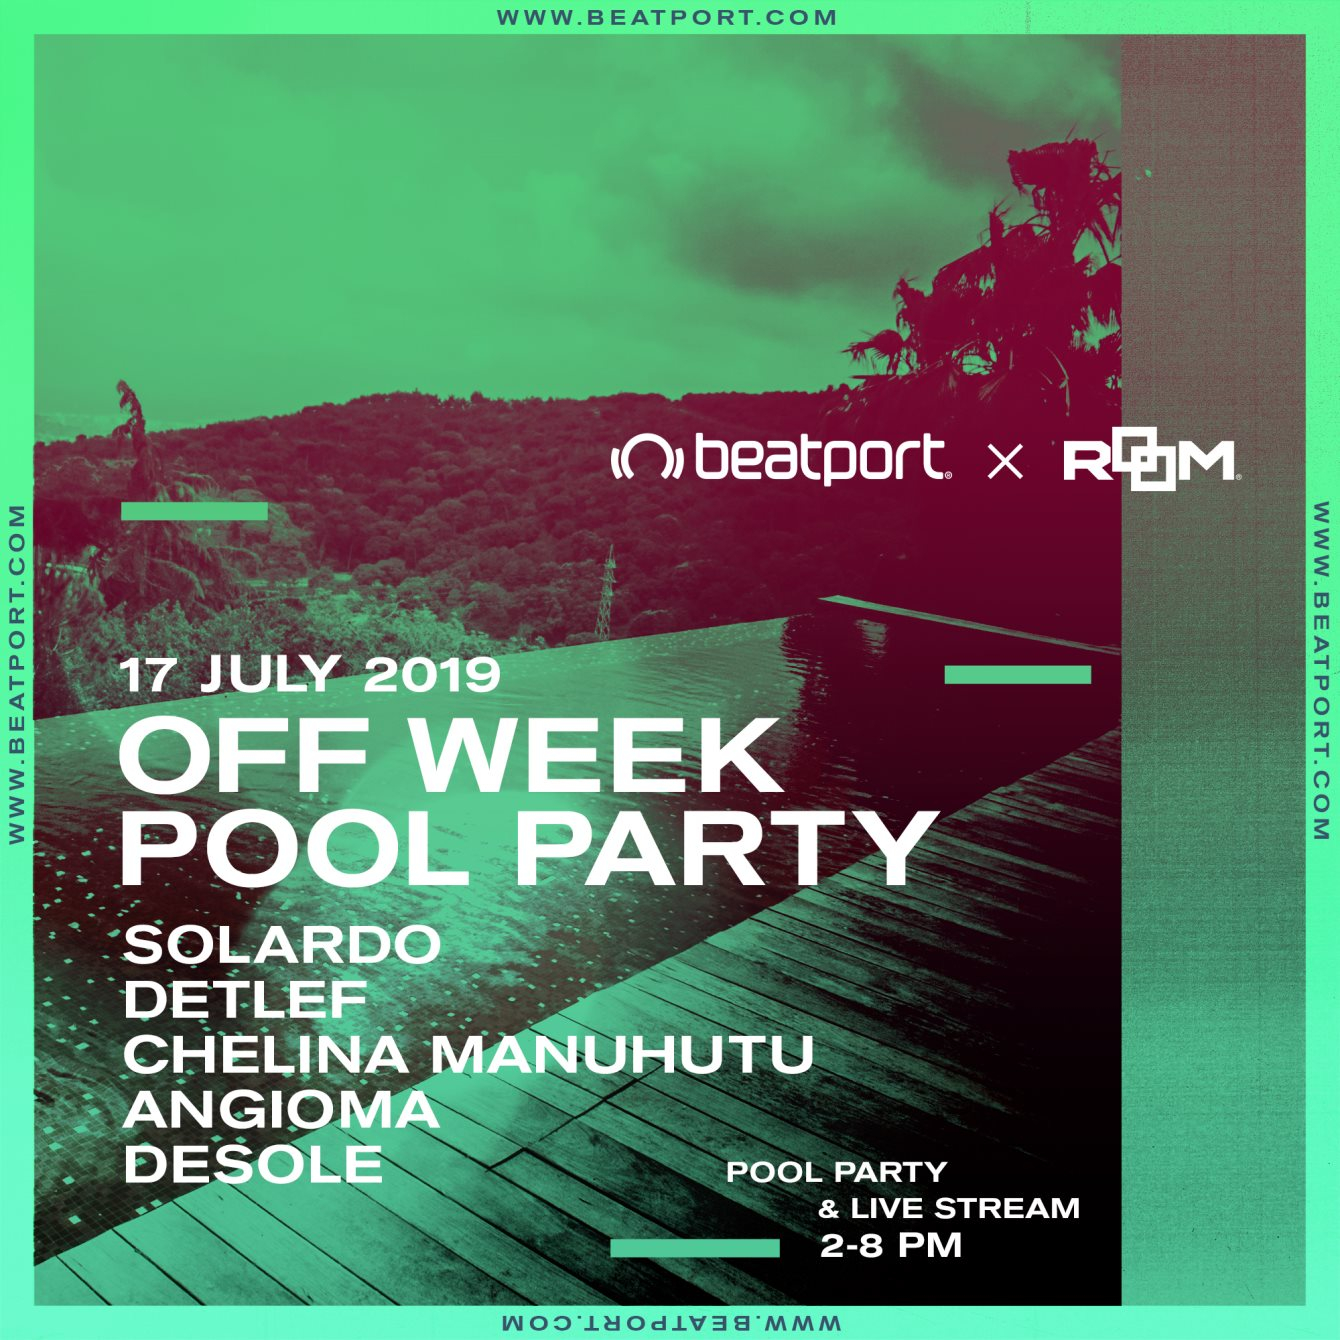 Pool Party Room Lab X Beatport Off Week - Flyer back